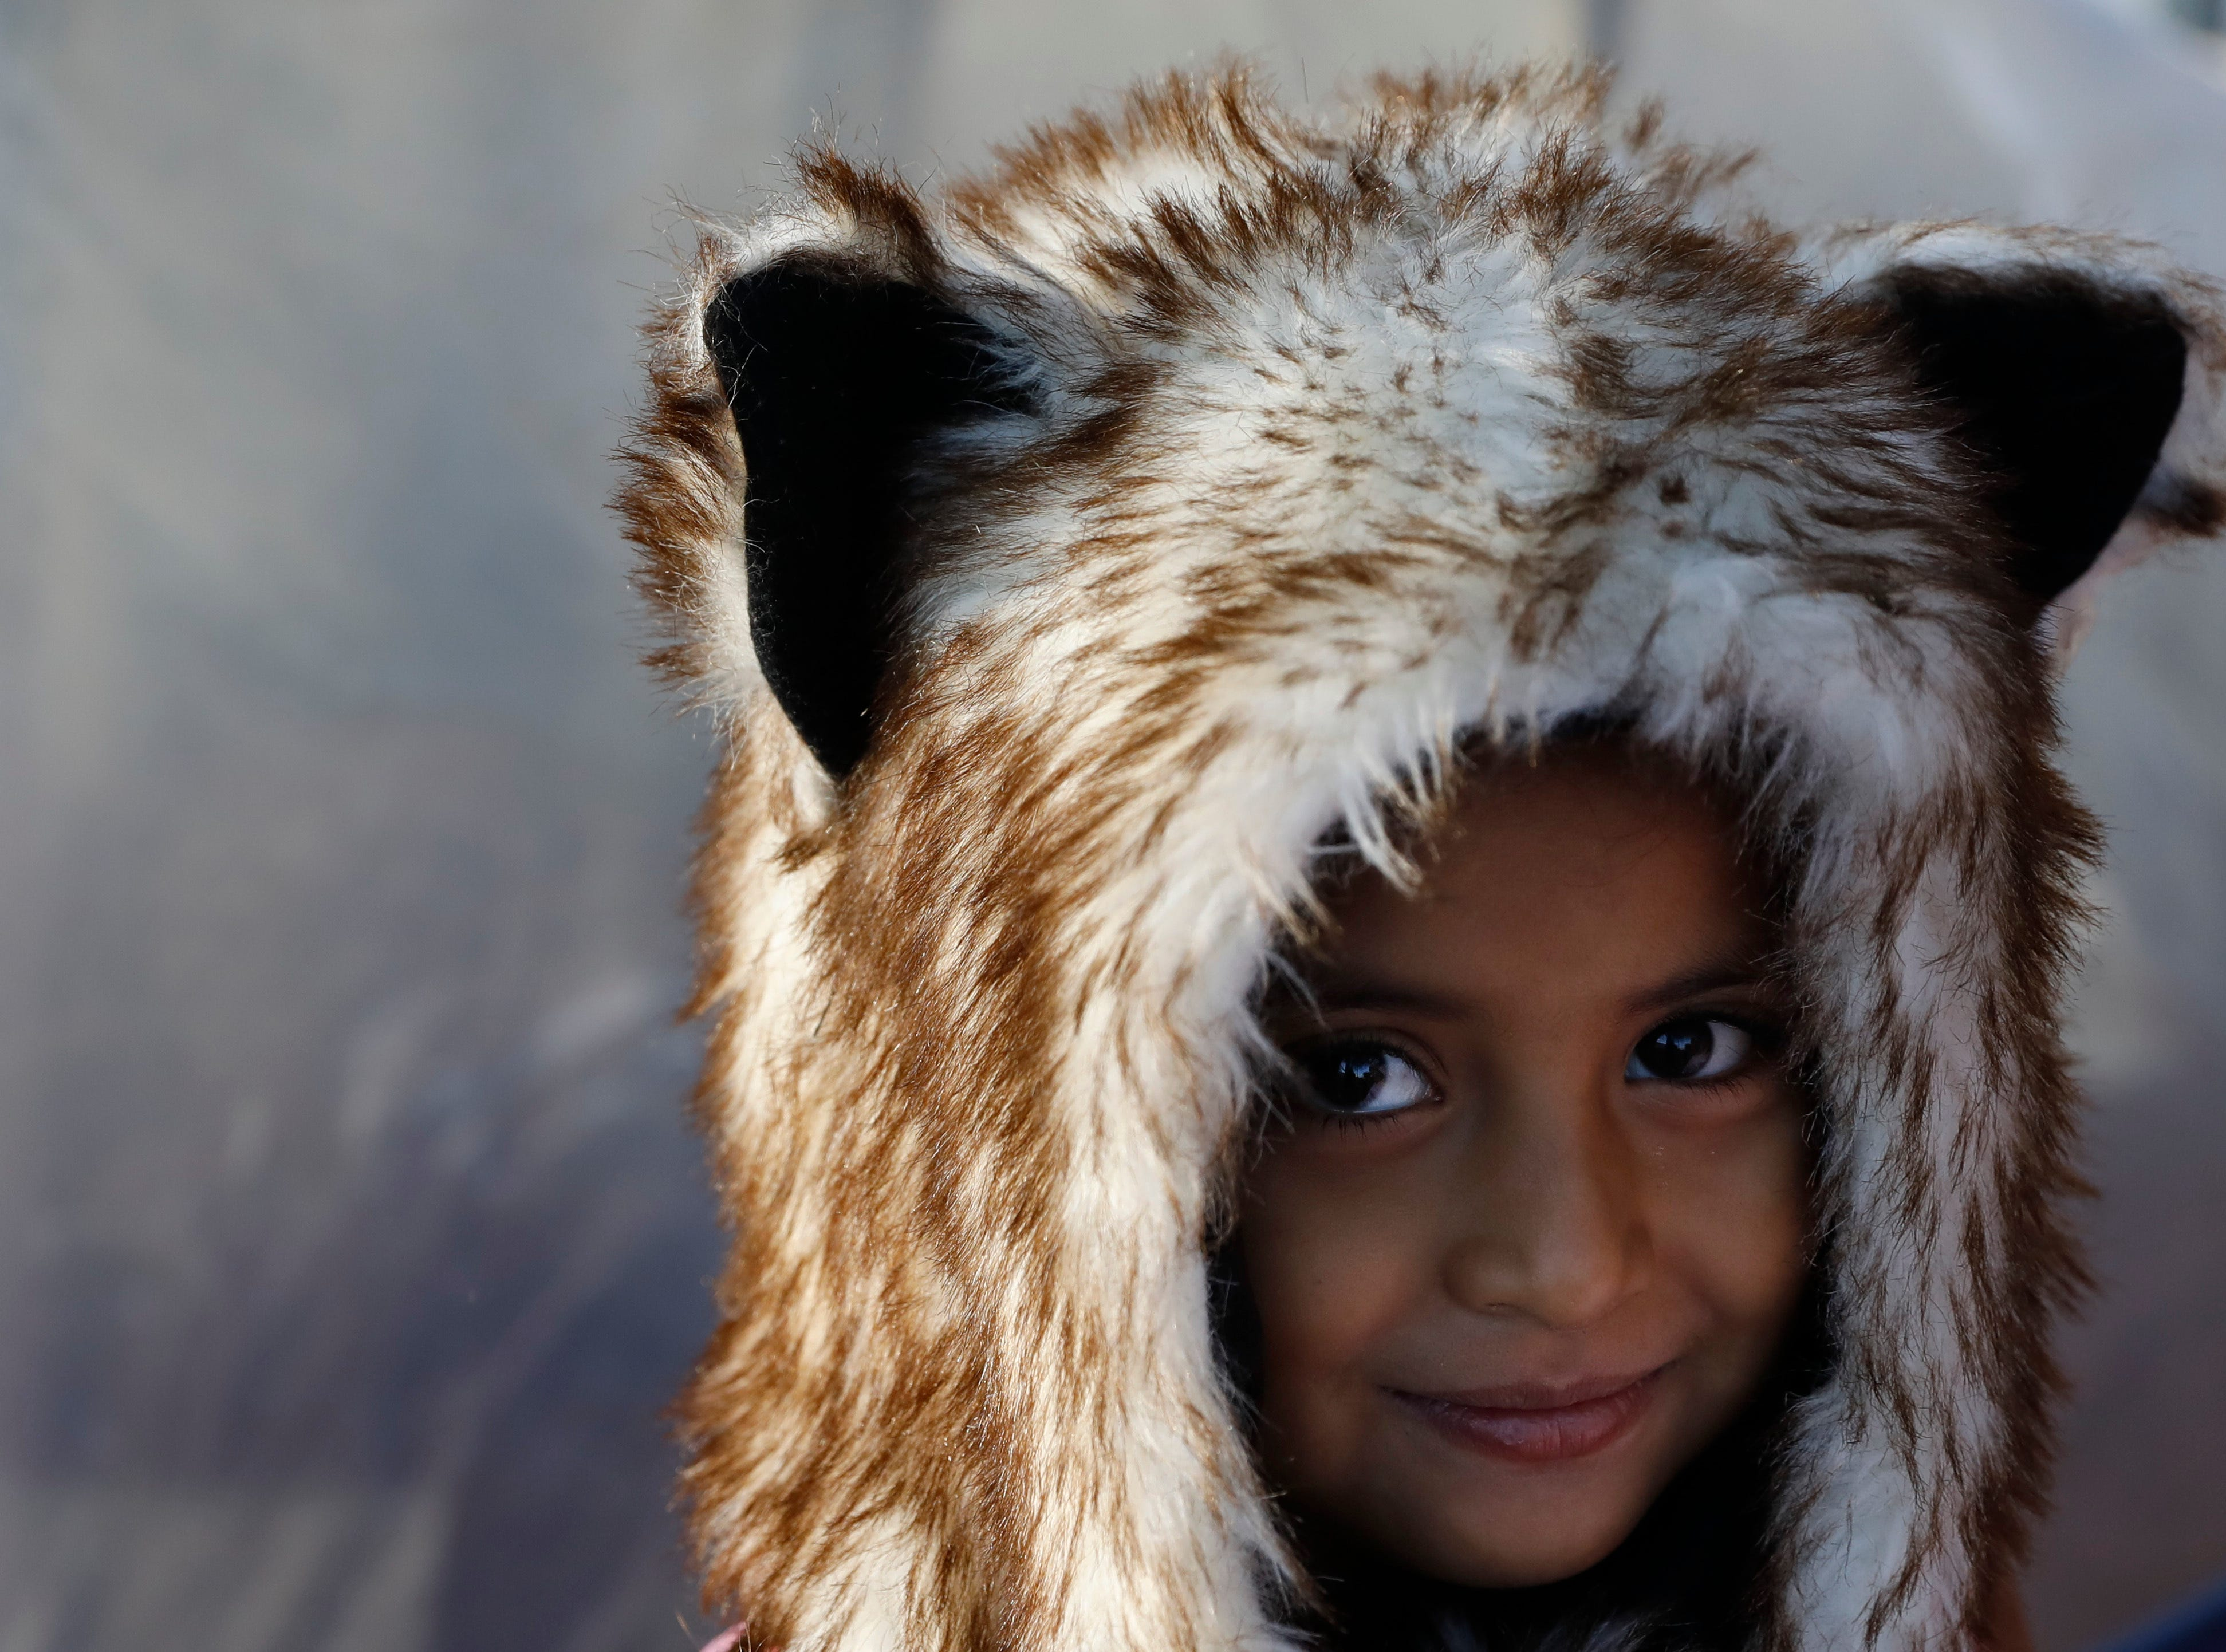 Honduran child migrant Gina keeps warm with a donated hood, outside the tent where her family of five is sleeping at an overflowing sports complex sheltering more than 5,000 Central American migrants, in Tijuana, Mexico, Wednesday, Nov. 28, 2018. As Mexico wrestles with what to do with the thousands of people camped out in the border city of Tijuana, President-elect Andres Manuel Lopez Obrador's government signaled Tuesday that it would be willing to house the migrants on Mexican soil while they apply for asylum in the United States, a key demand of U.S. President Donald Trump.